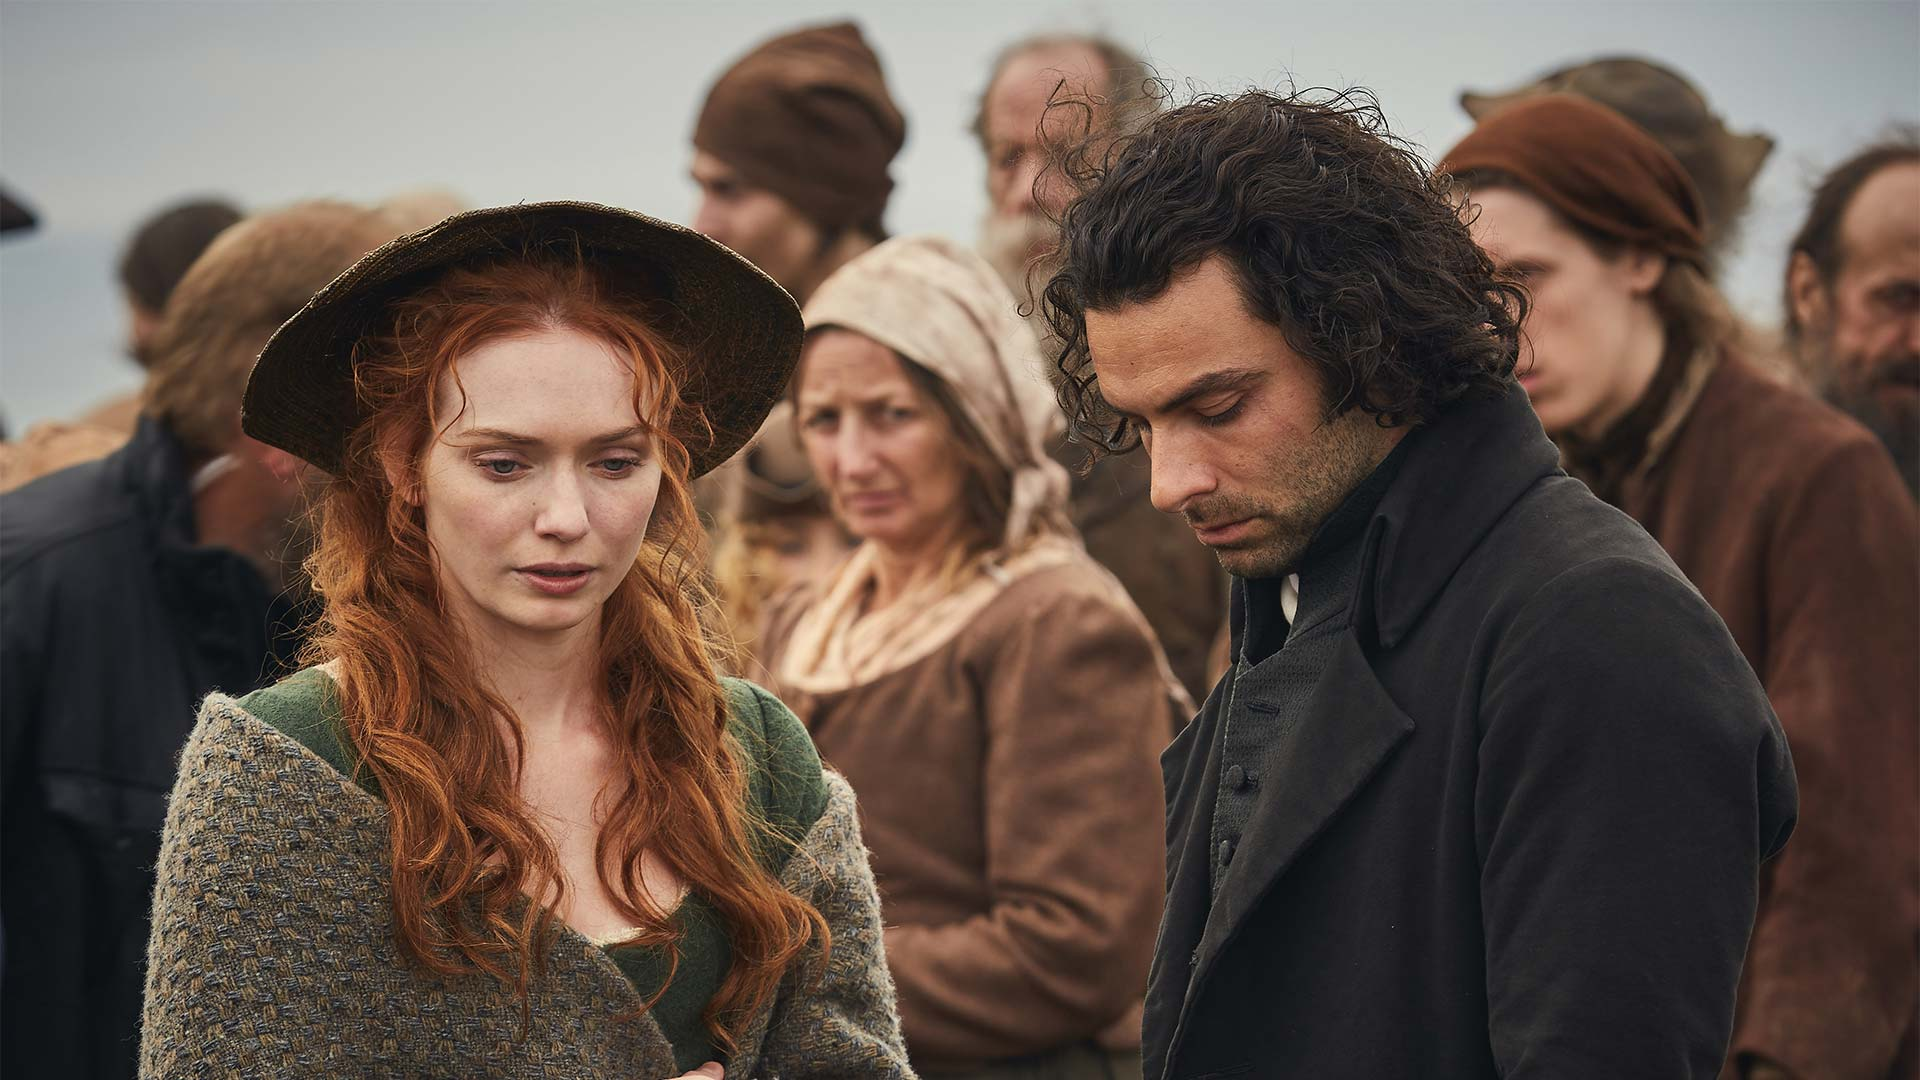 Eleanor Tomlinson as Demelza Poldark and Aidan Turner as Ross Poldark